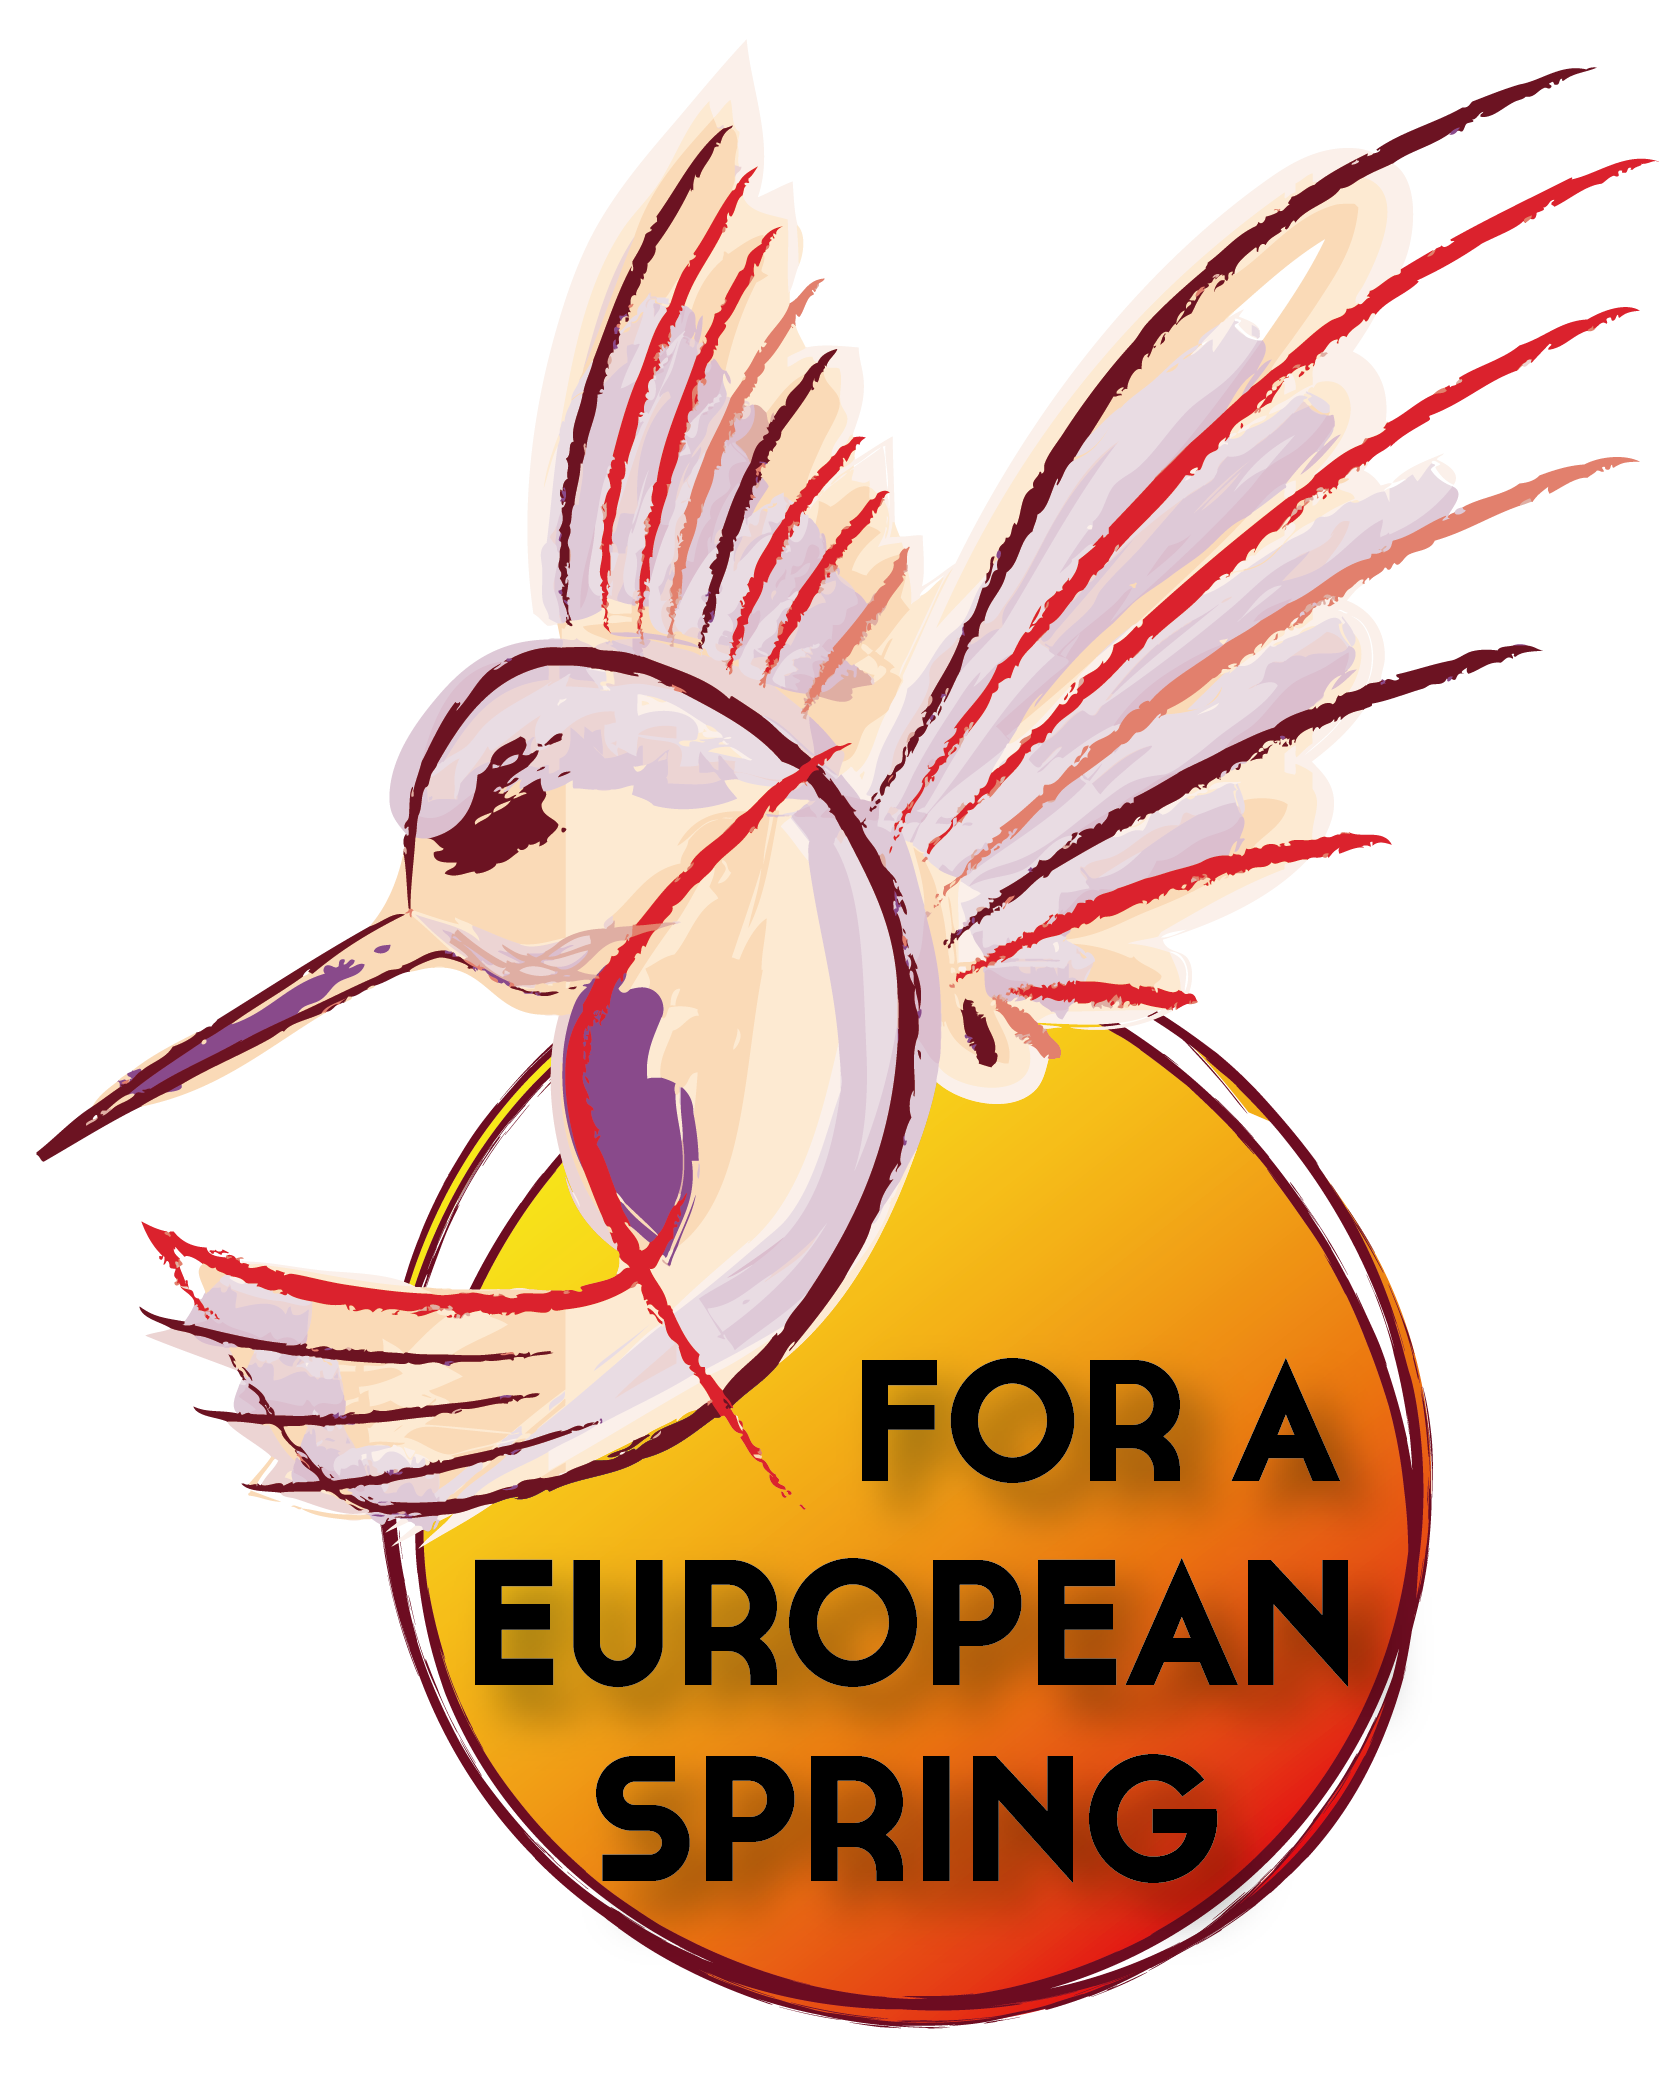 Country clipart country europe. For a european spring